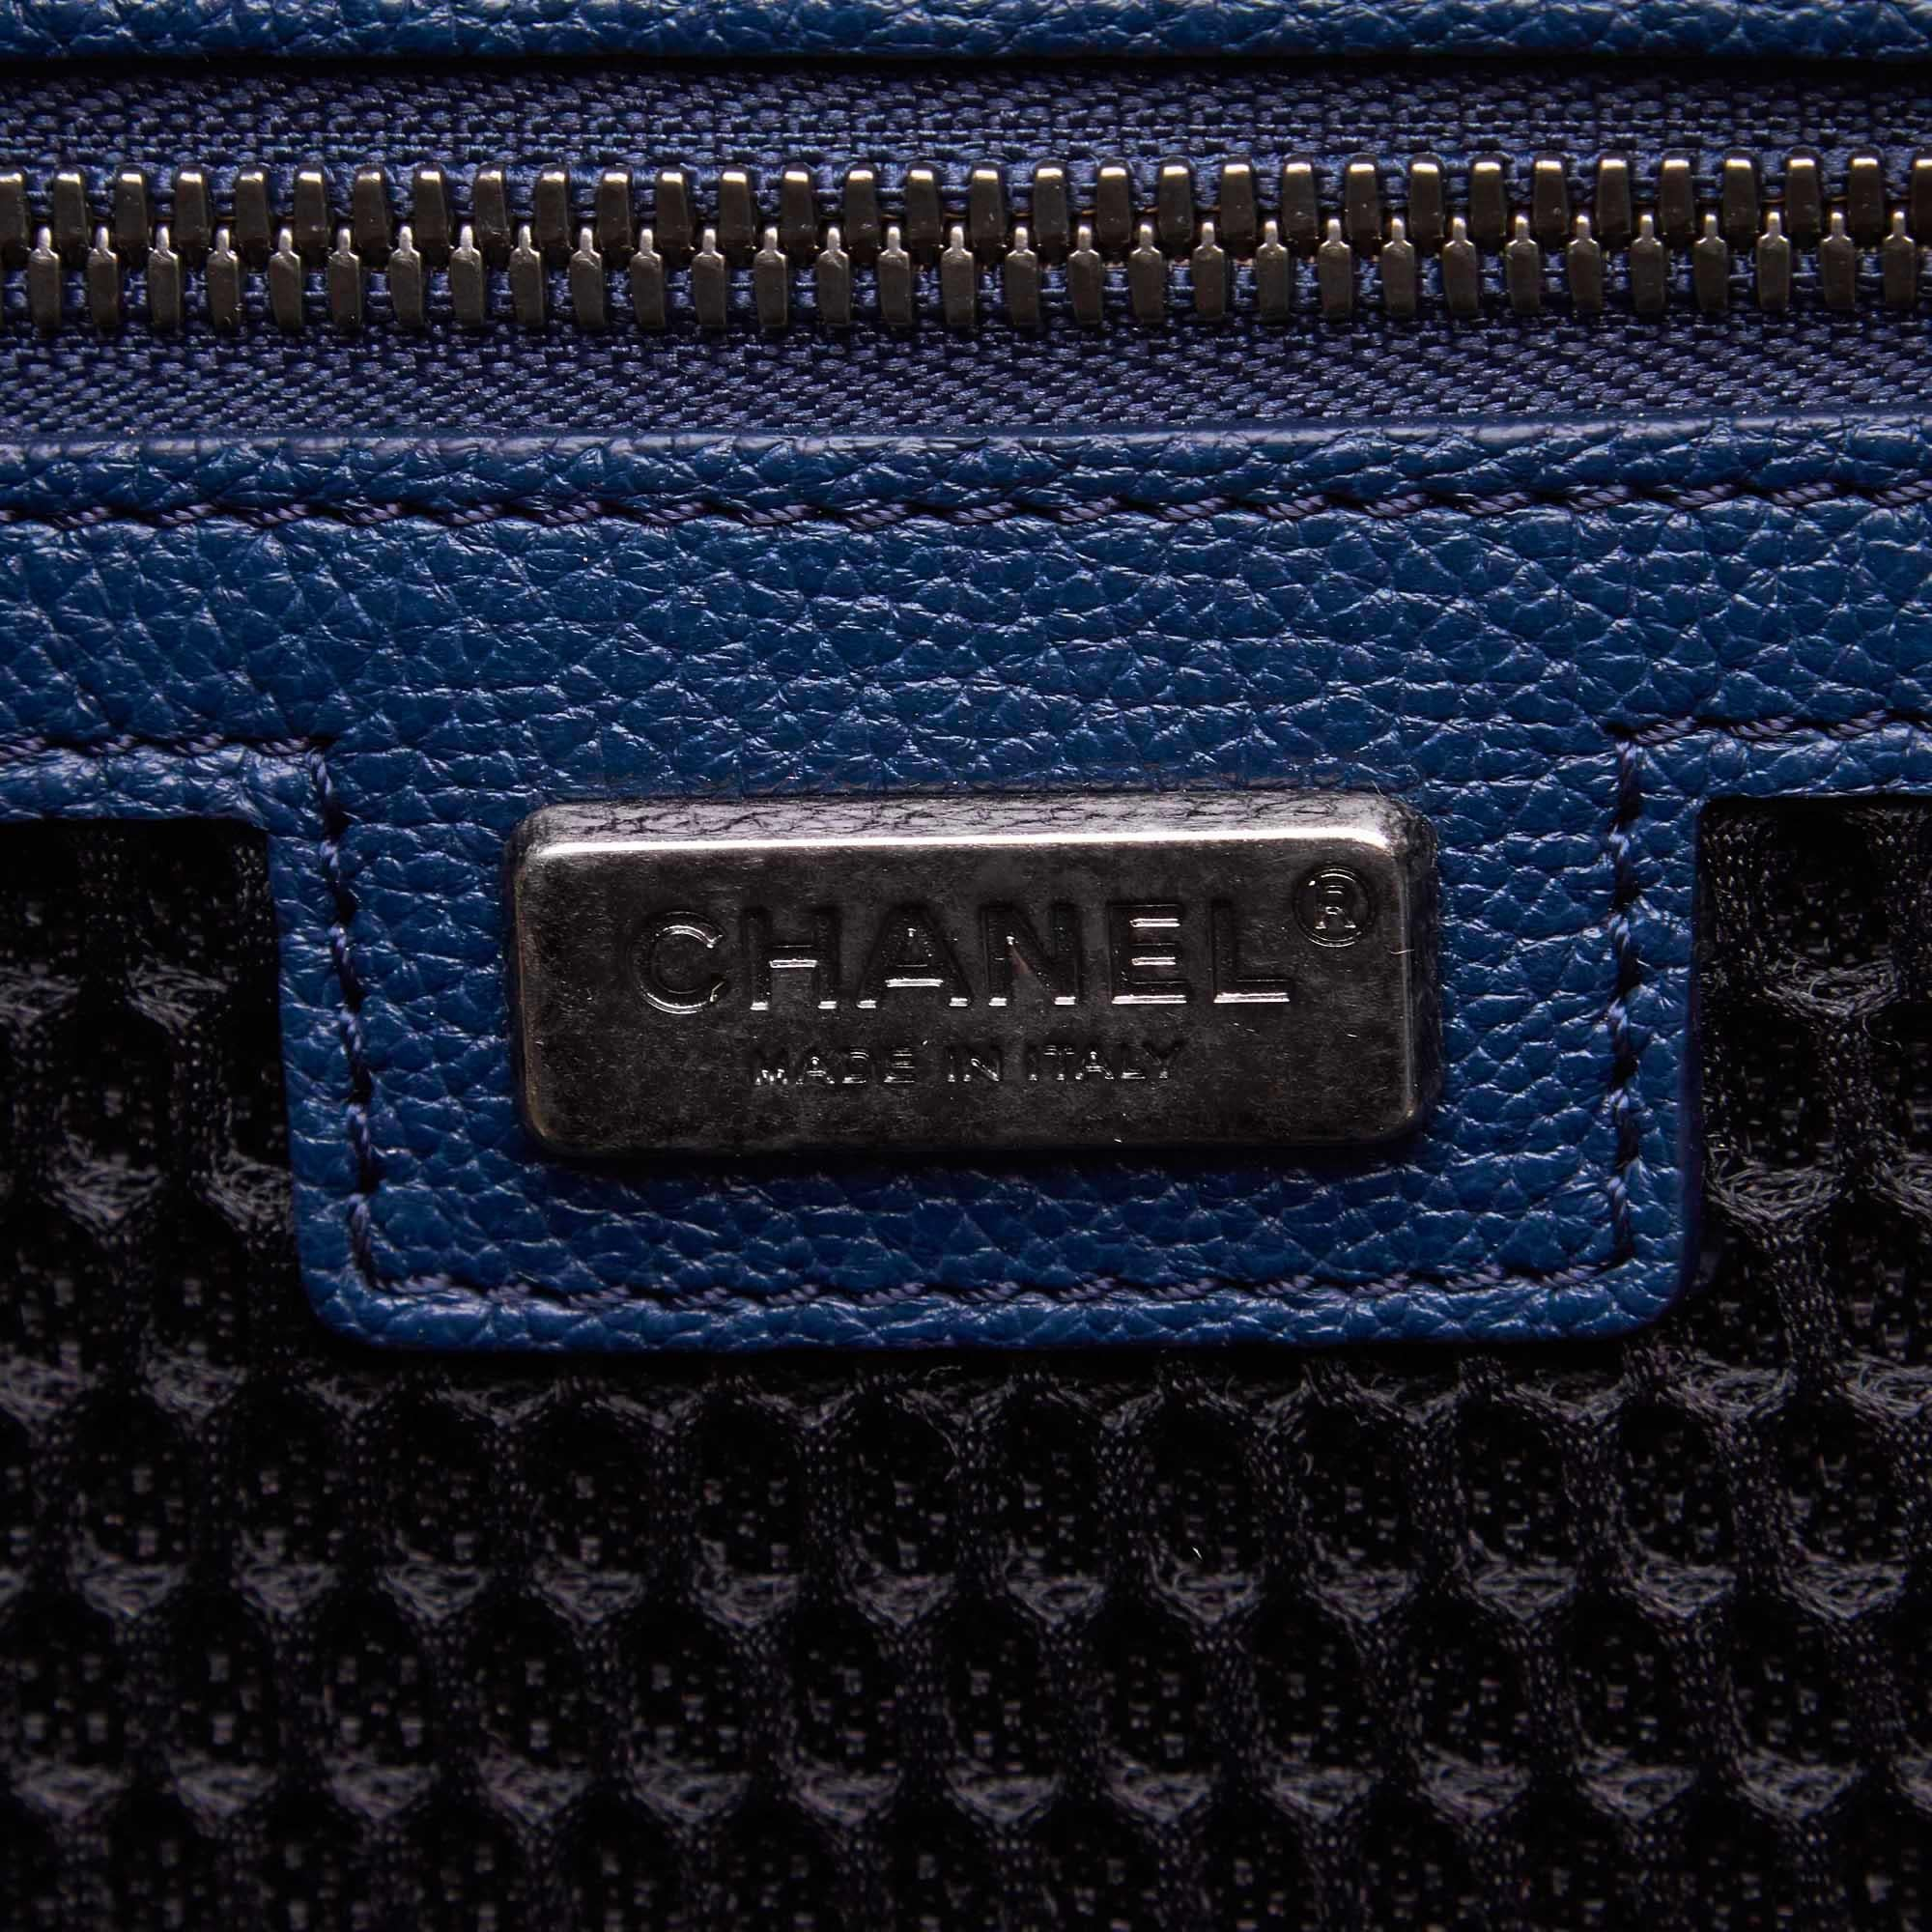 1b88666de194e9 Chanel Blue Caviar Leather Leather Caviar Coco Case Trolley Italy For Sale  at 1stdibs